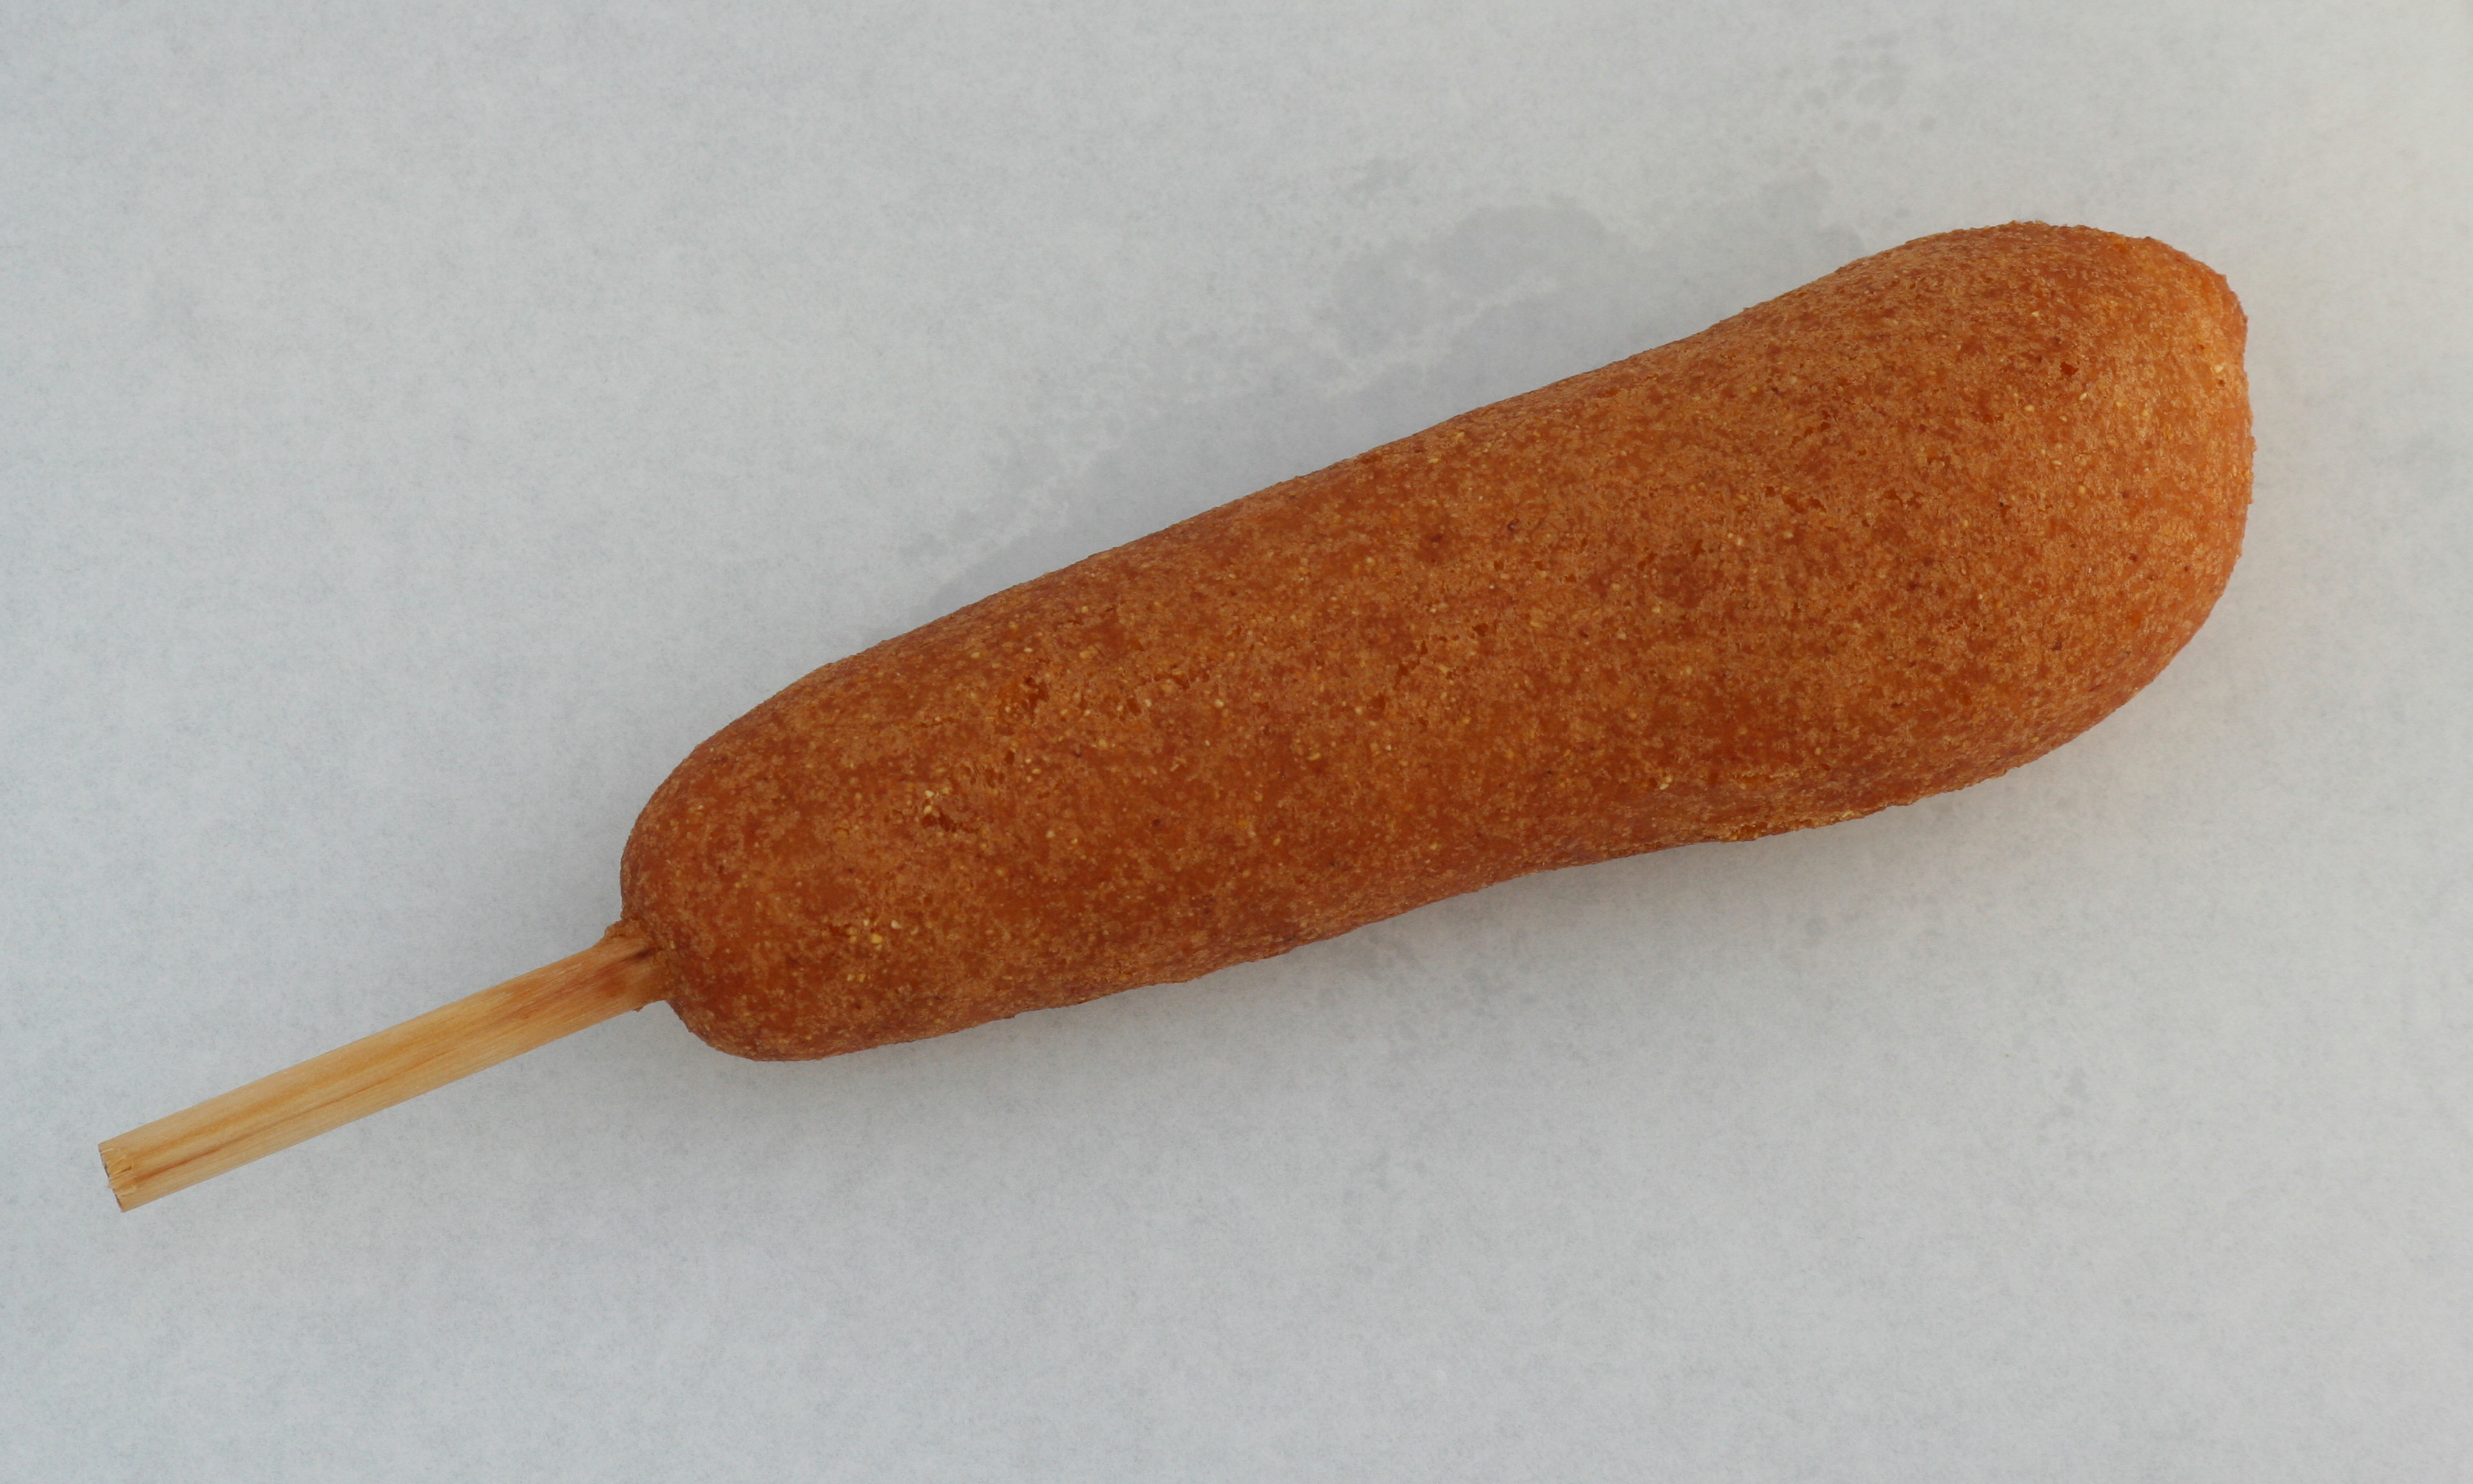 Opinions on Corn dog